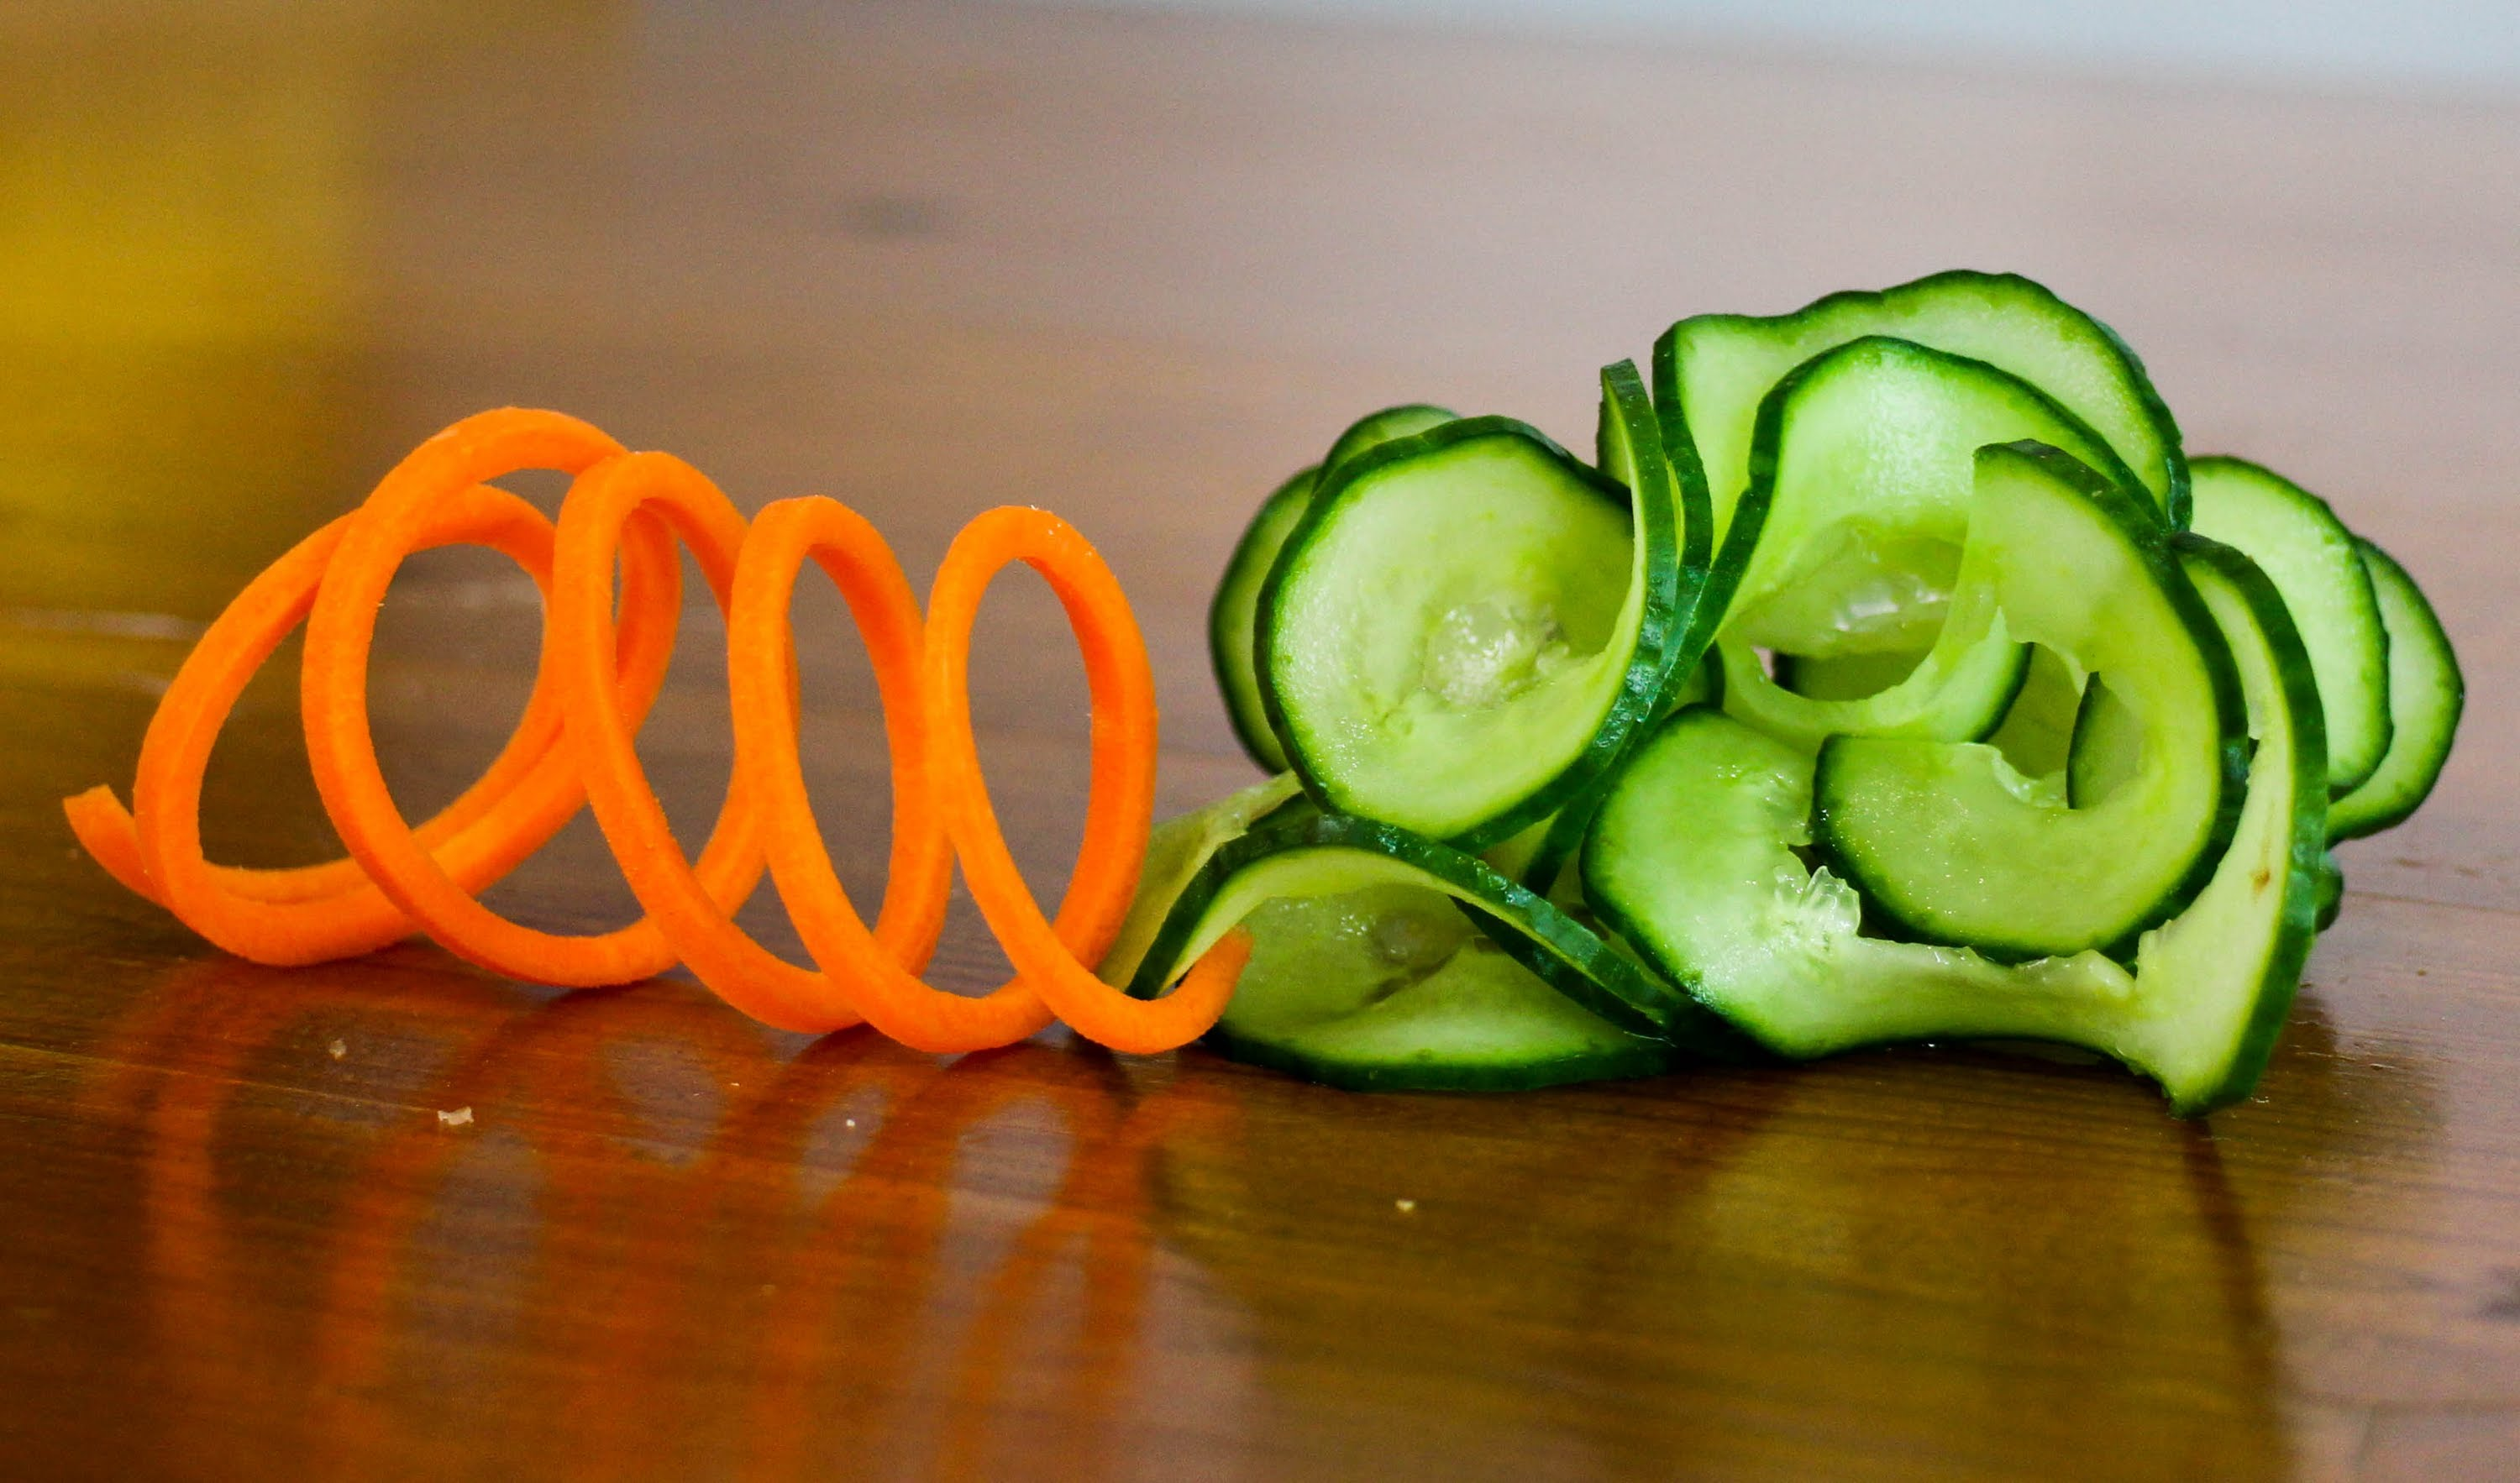 Culinary school – How to make carrot slinky and cucumber